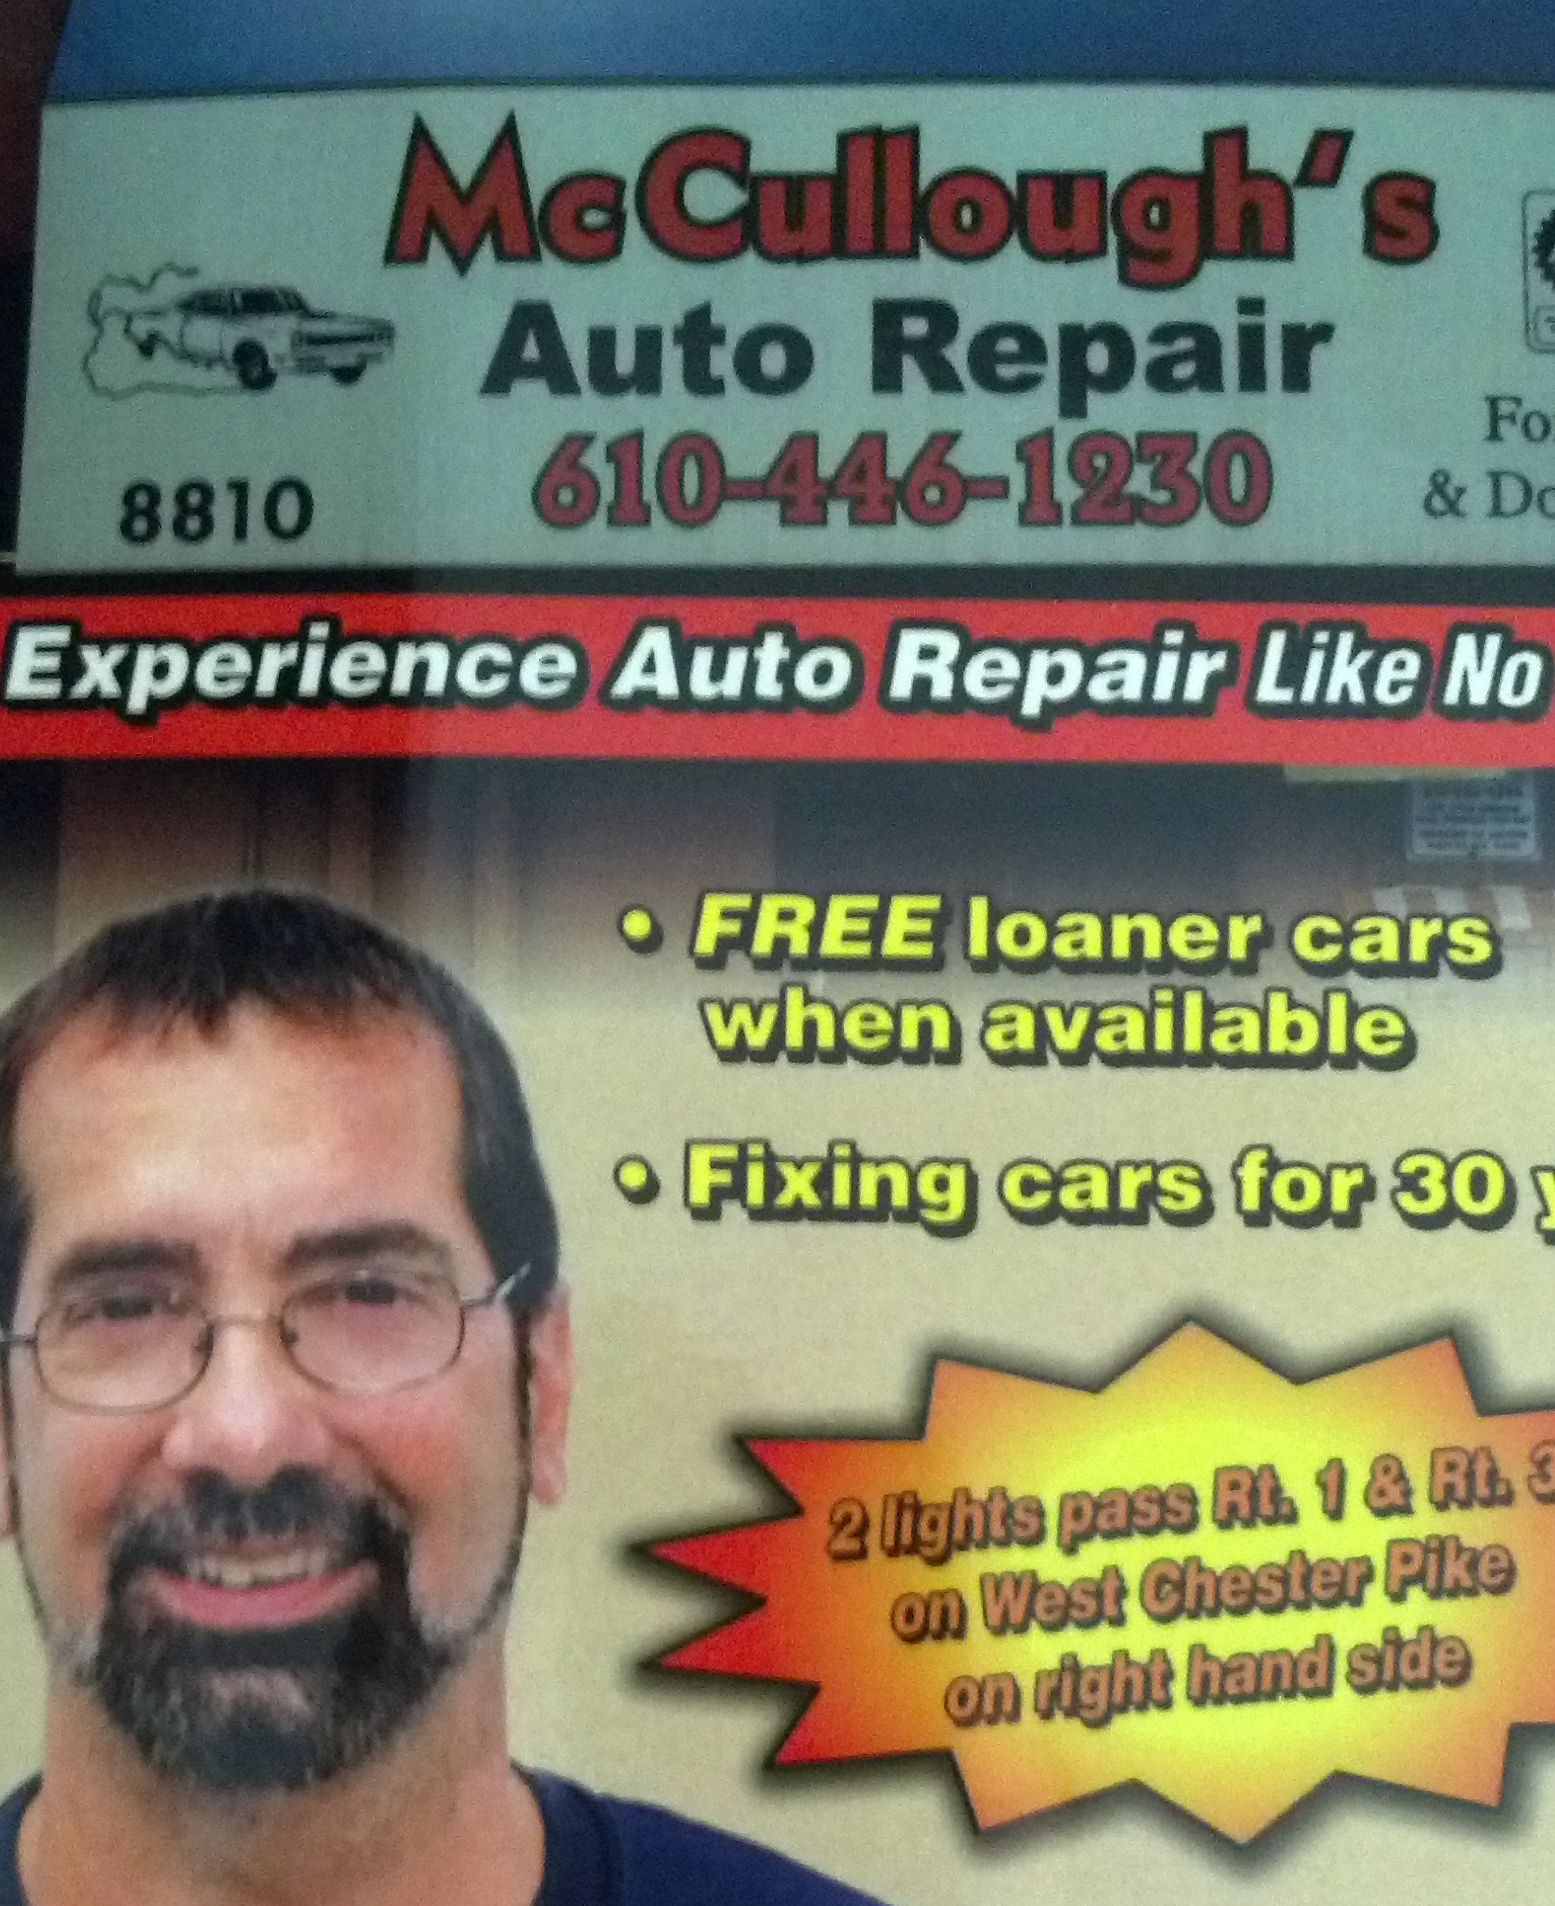 McCullough's Auto Repair